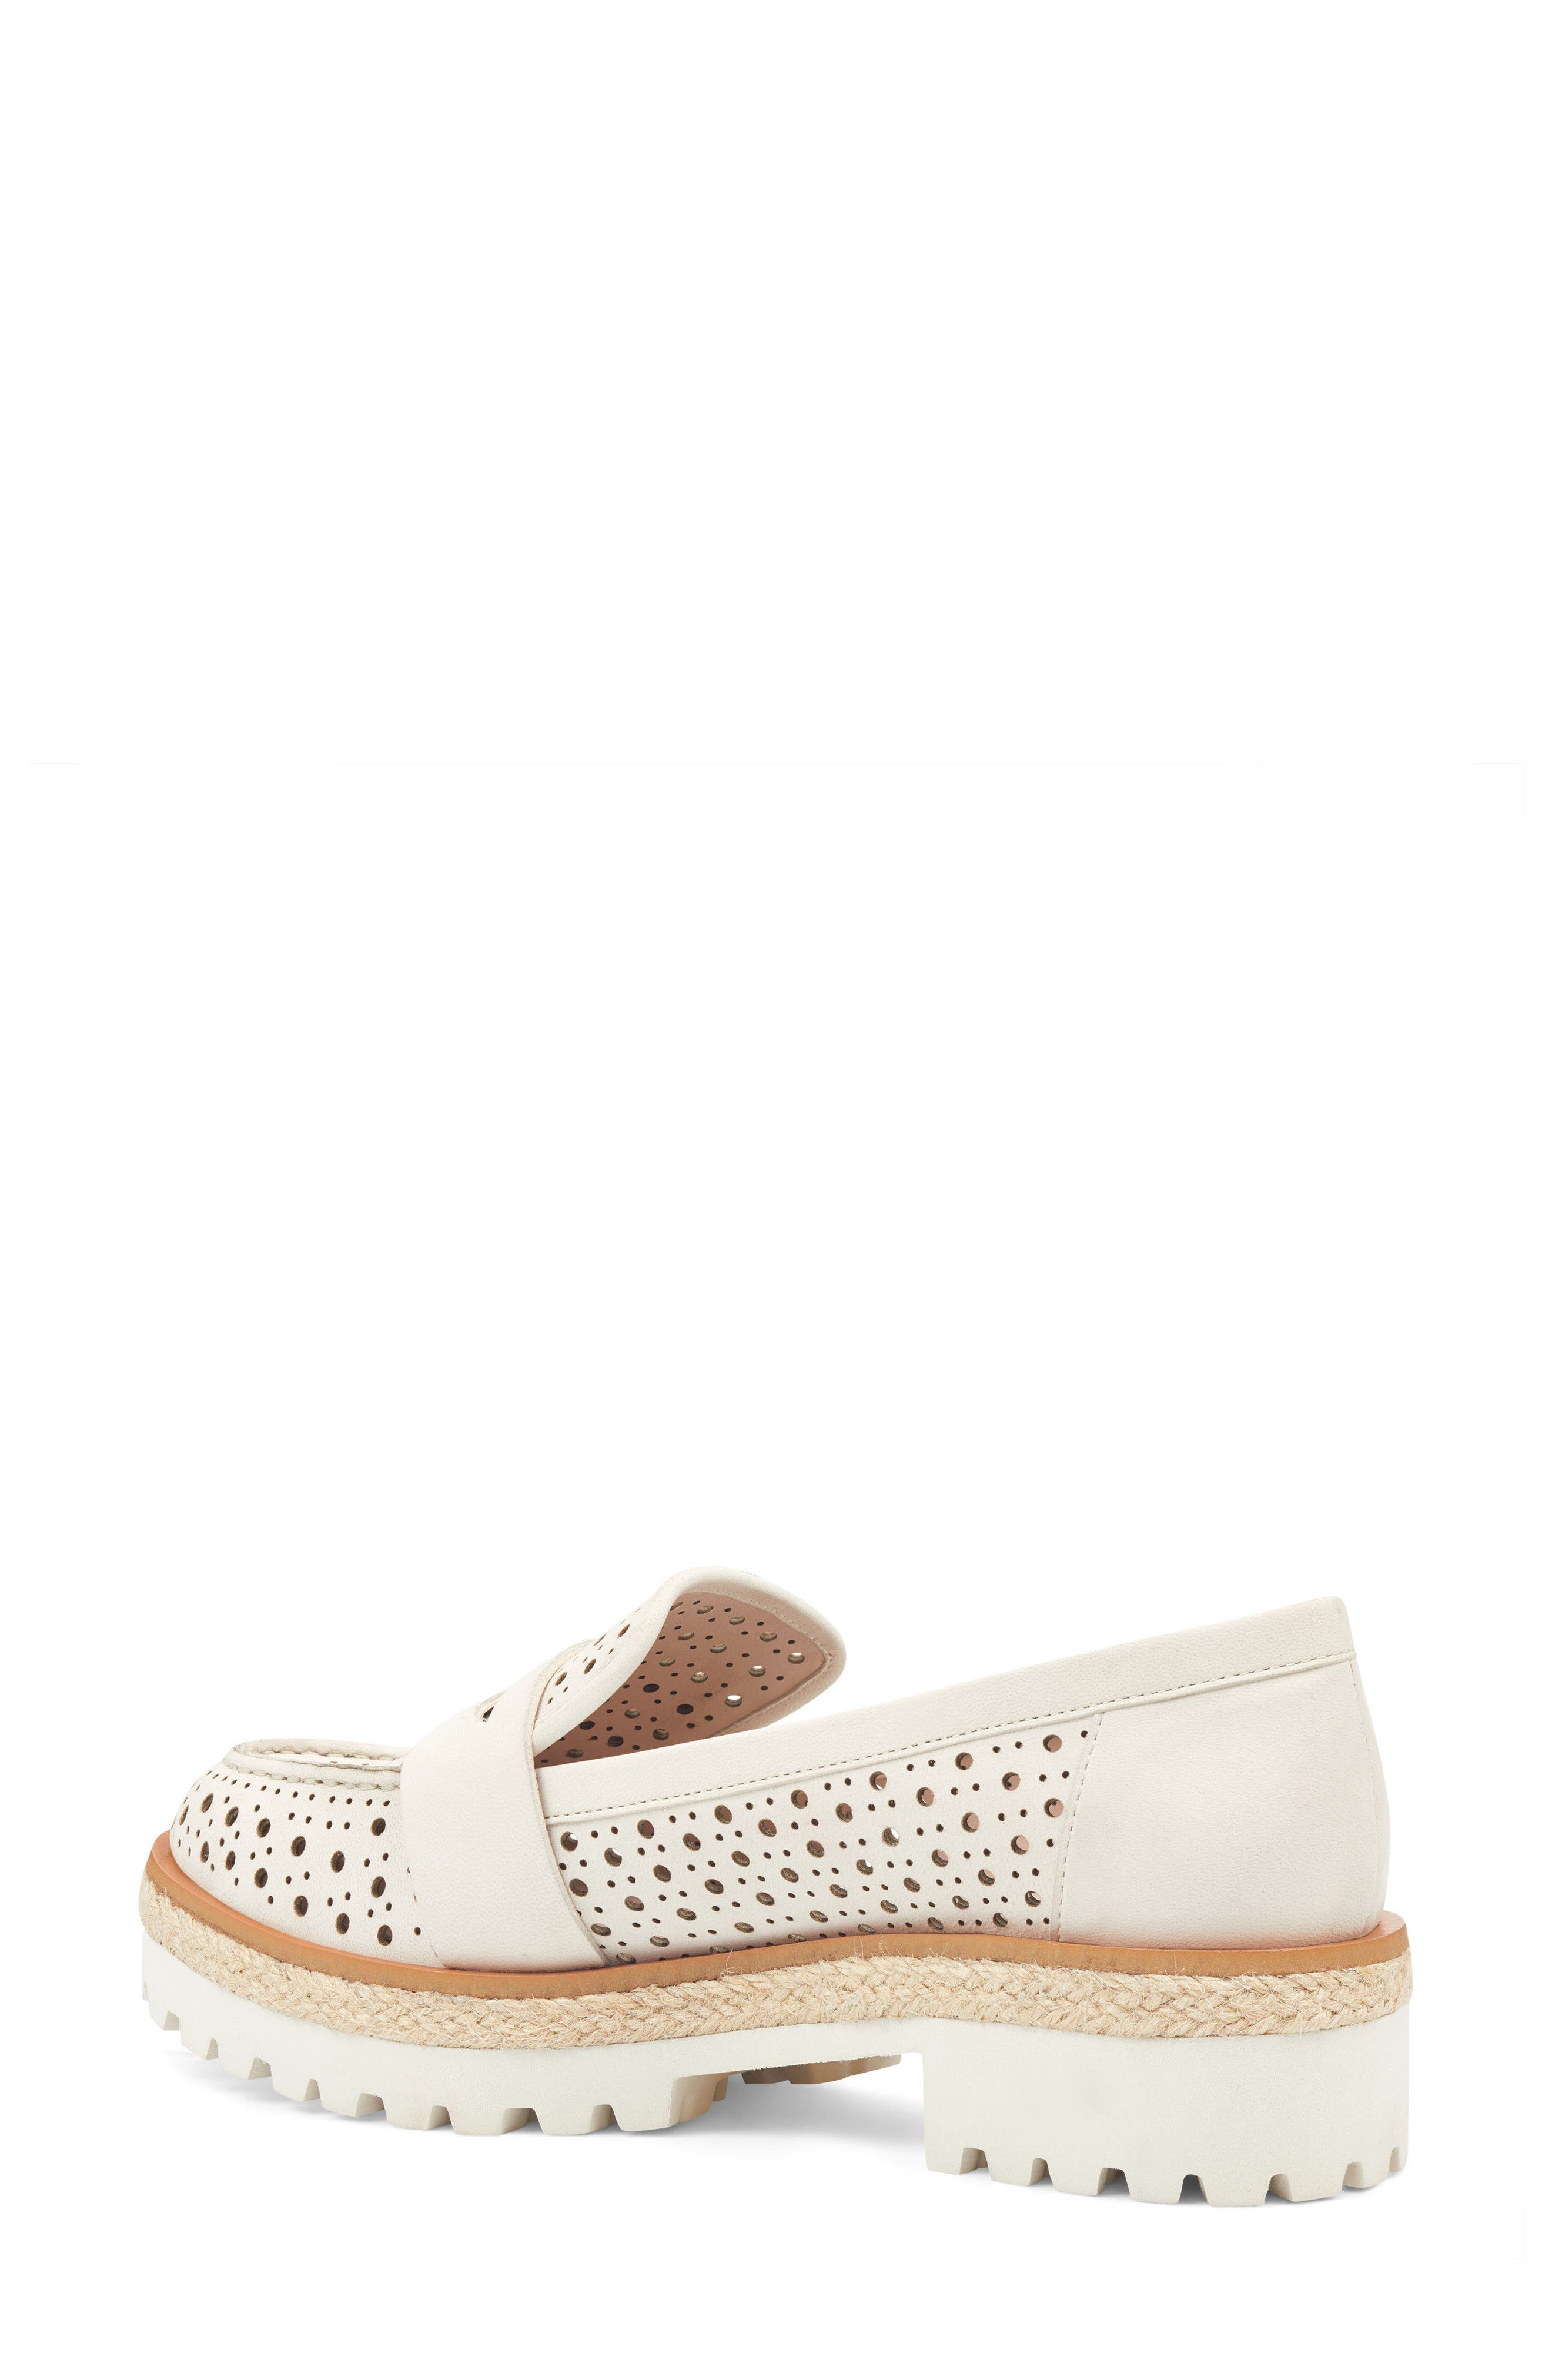 Gradskool Perforated Penny Loafer,                             Alternate thumbnail 2, color,                             Off White Leather